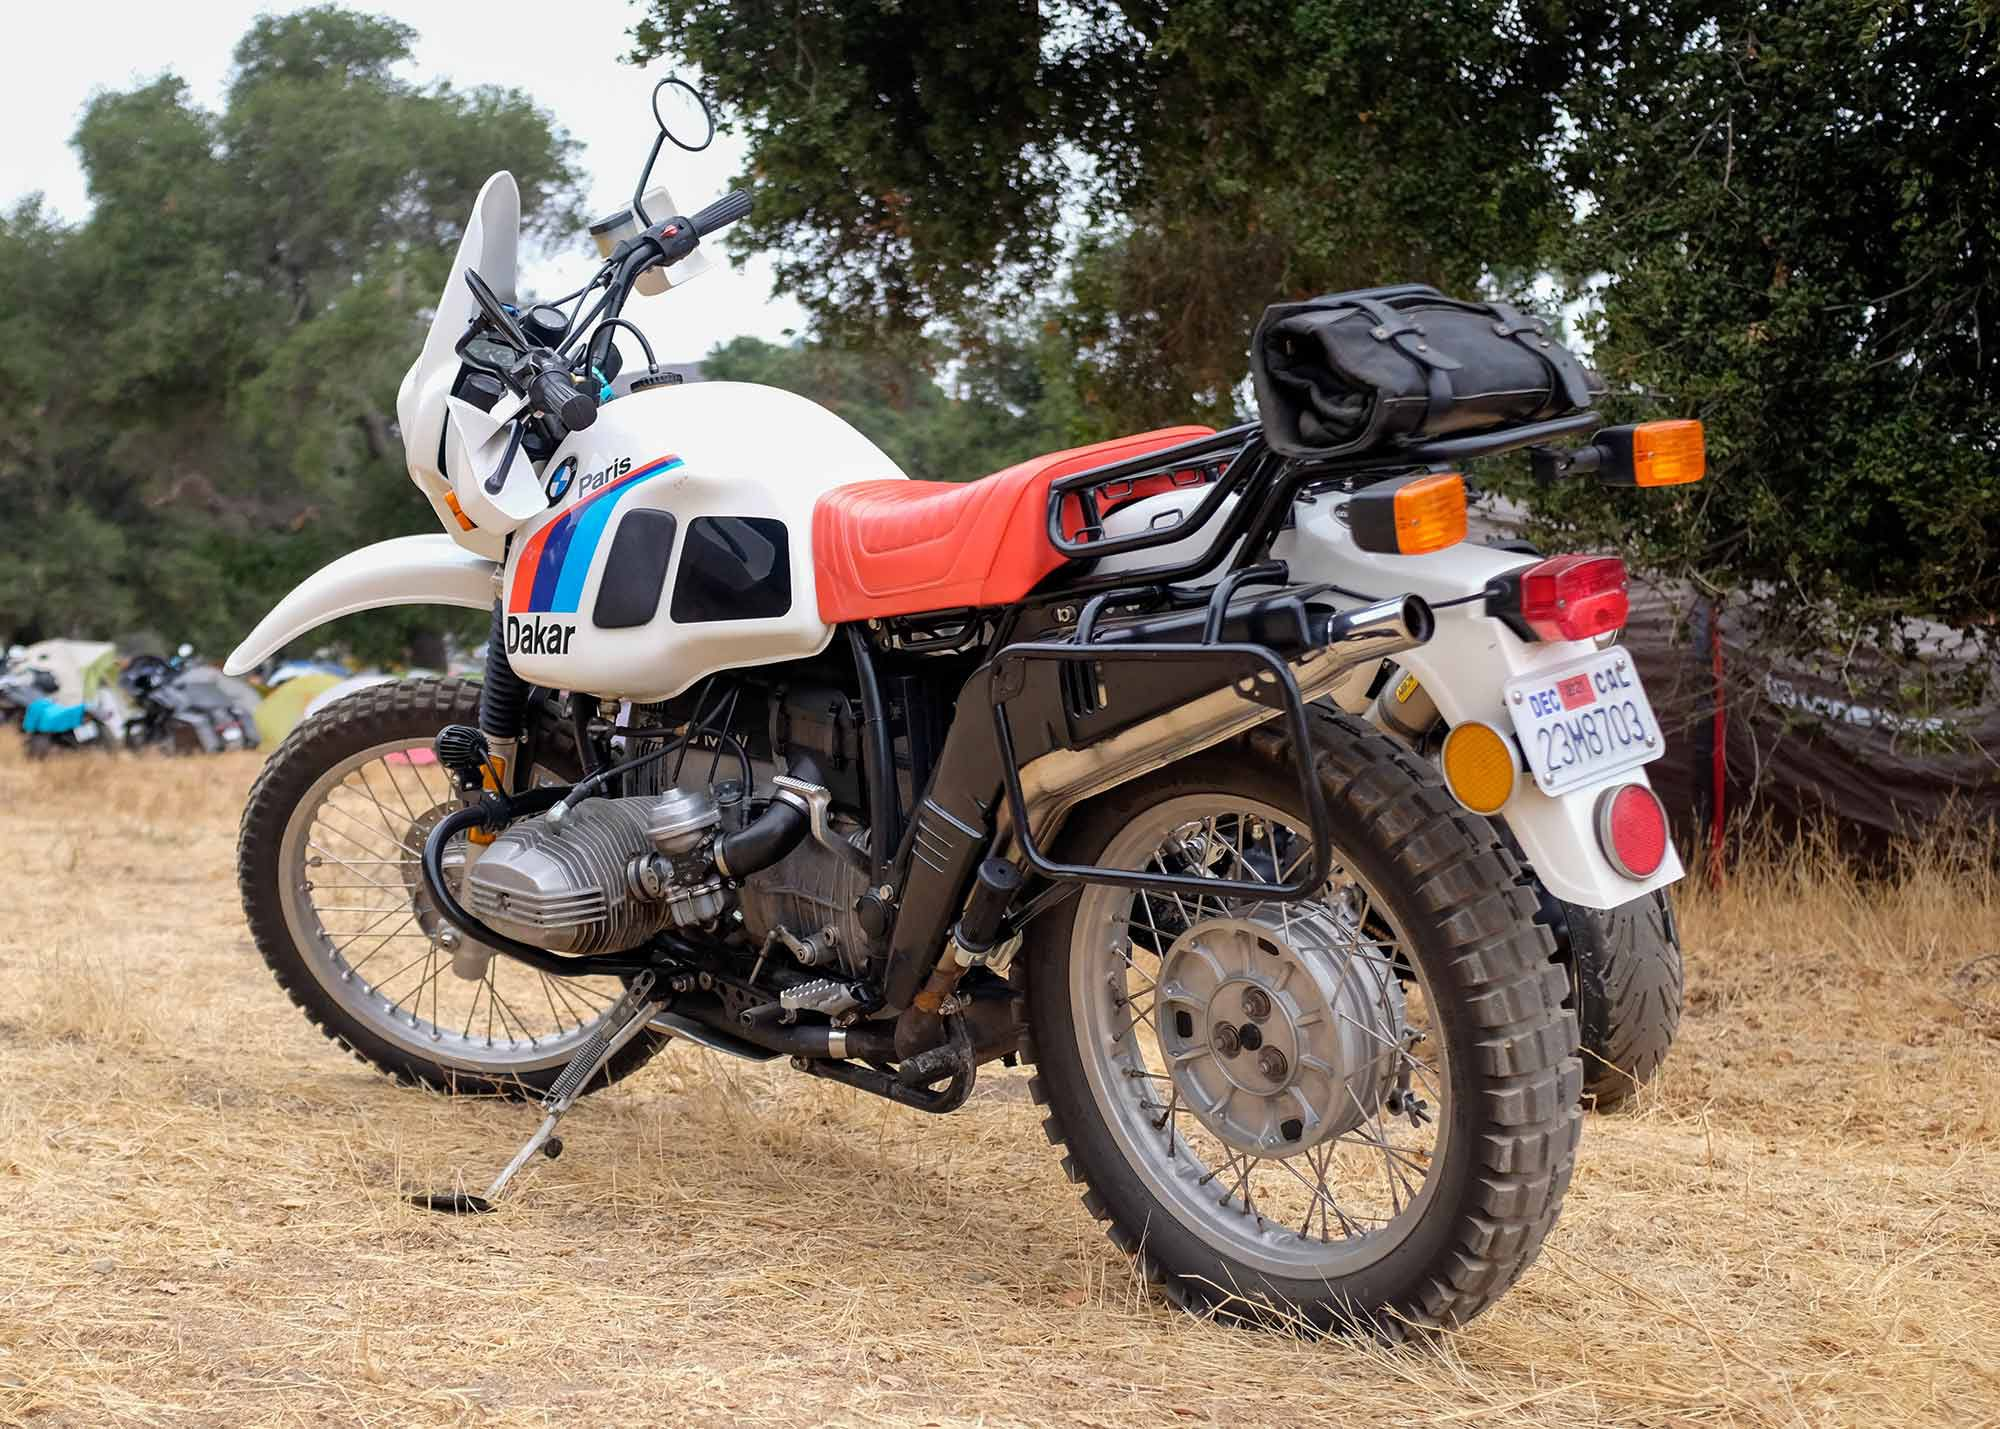 Although most riders arrive on modern machines, this prime example of a BMW R80 G/S Paris Dakar stole the show.